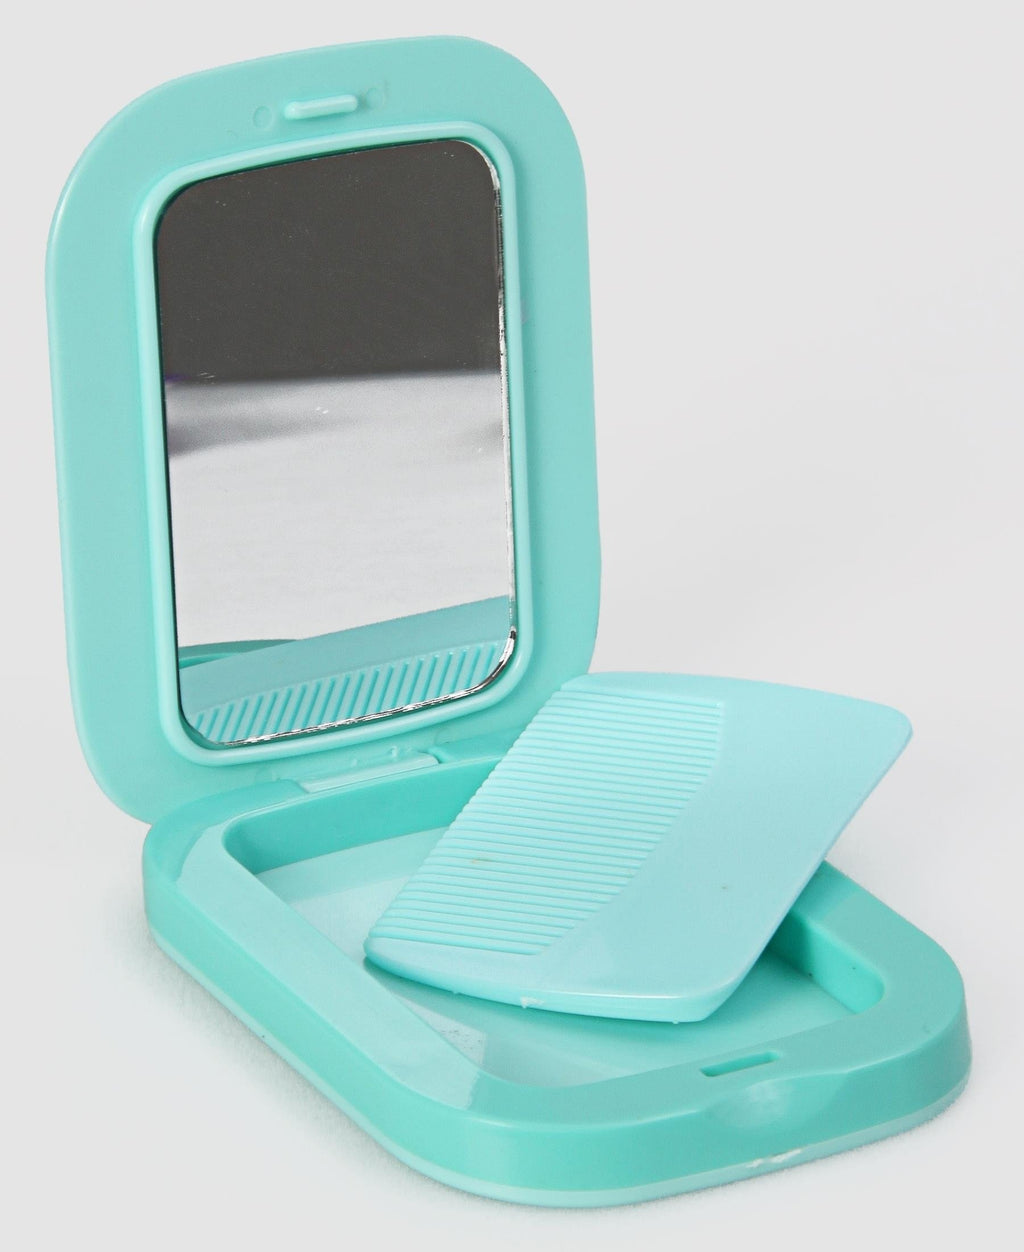 Compact Mirror With Comb - Turquoise